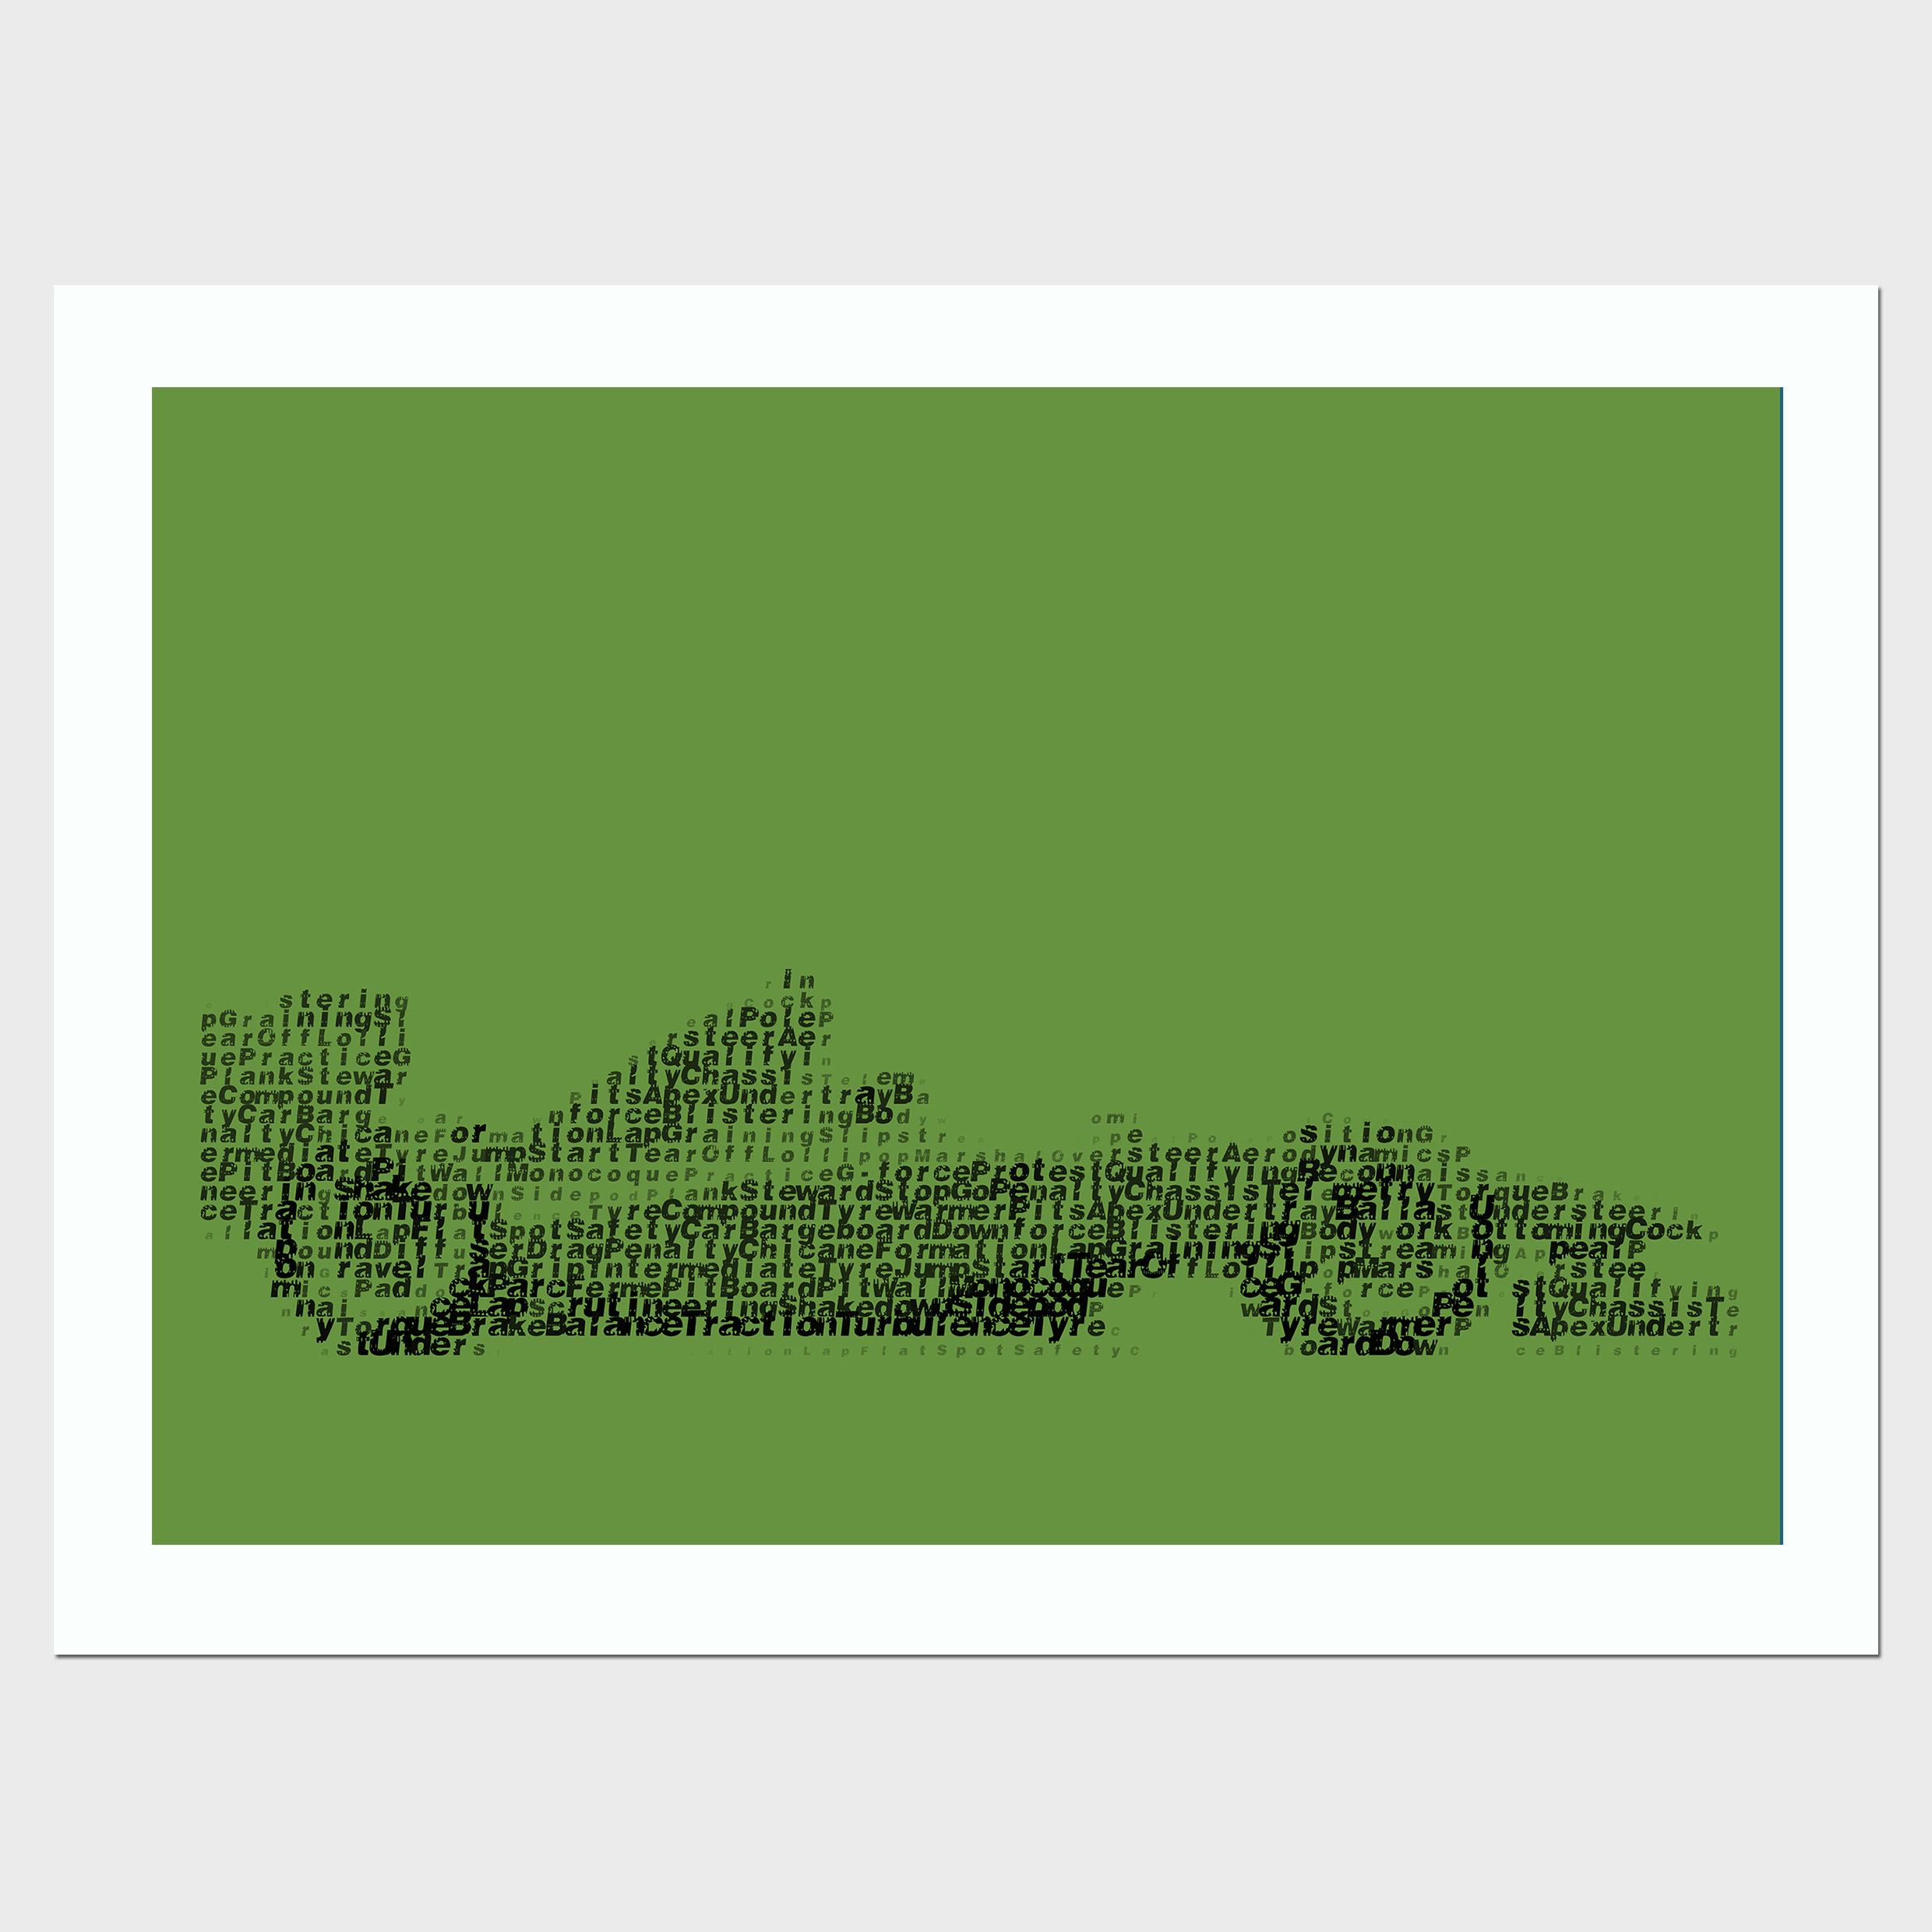 Formula One F1 Glossary Side Framed Print By Judith Brieger - Brights Collection